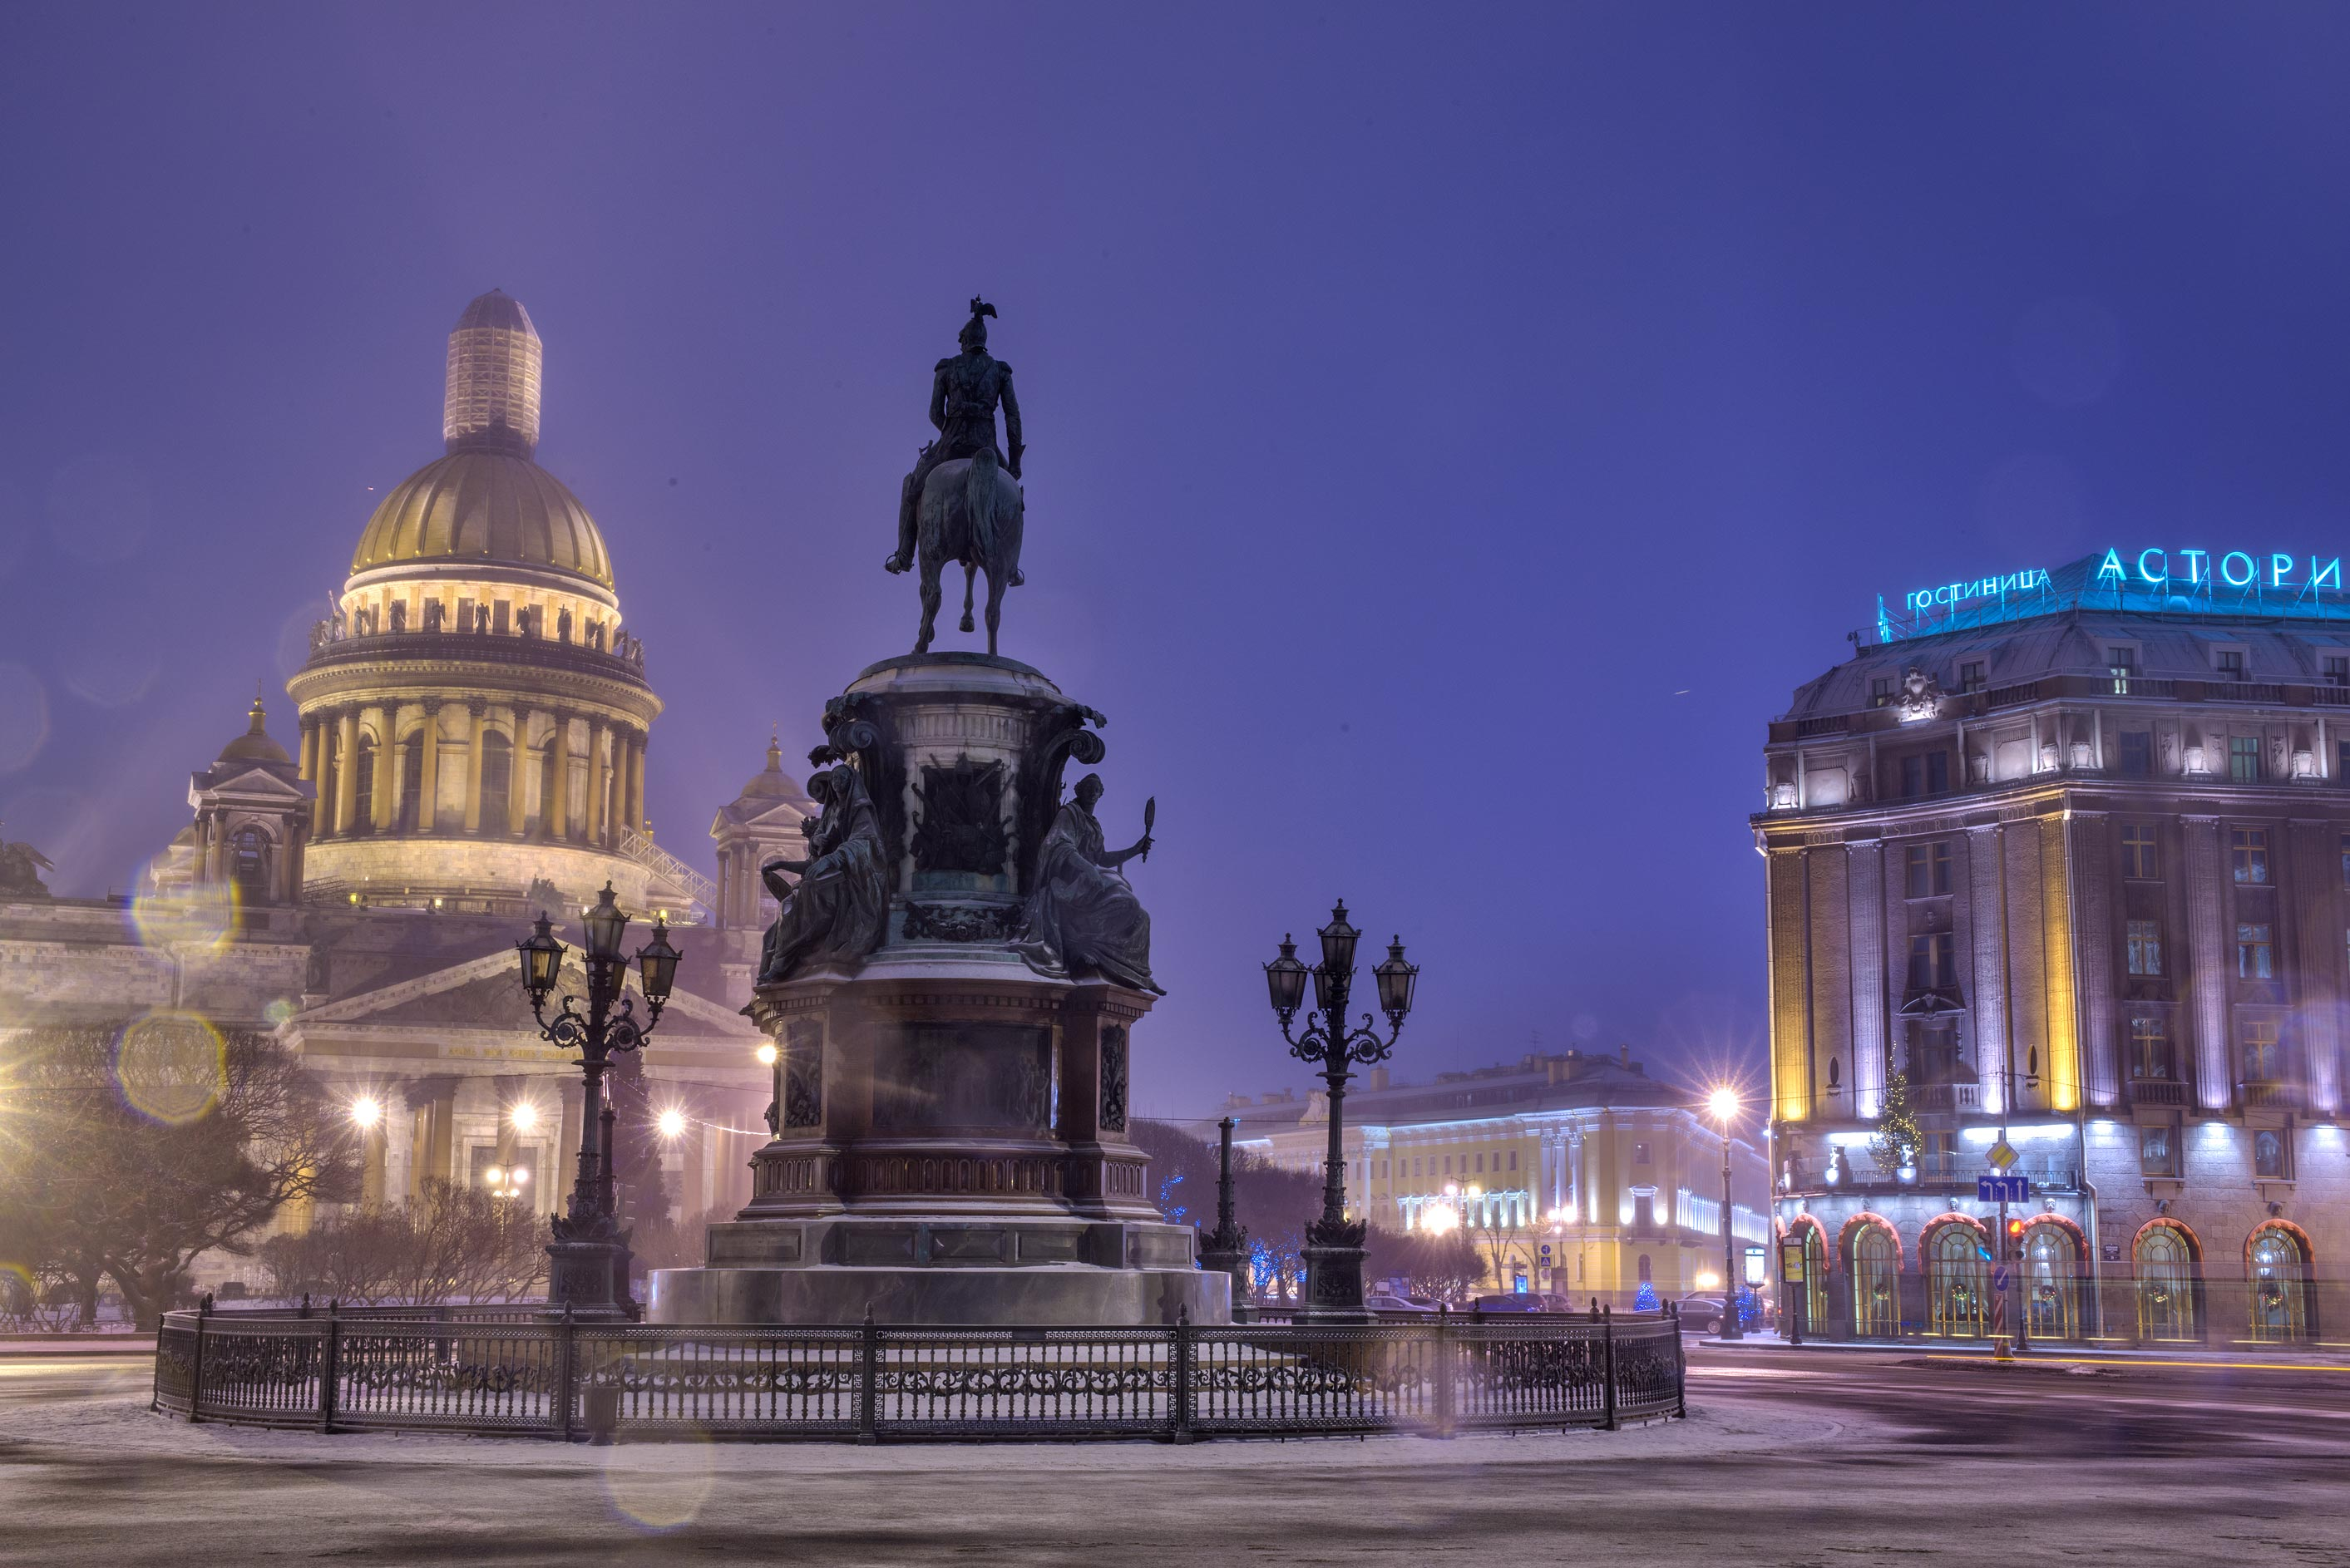 St. Isaac Cathedral, Astoria Hotel and Nicholas I...Blue Bridge. St.Petersburg, Russia